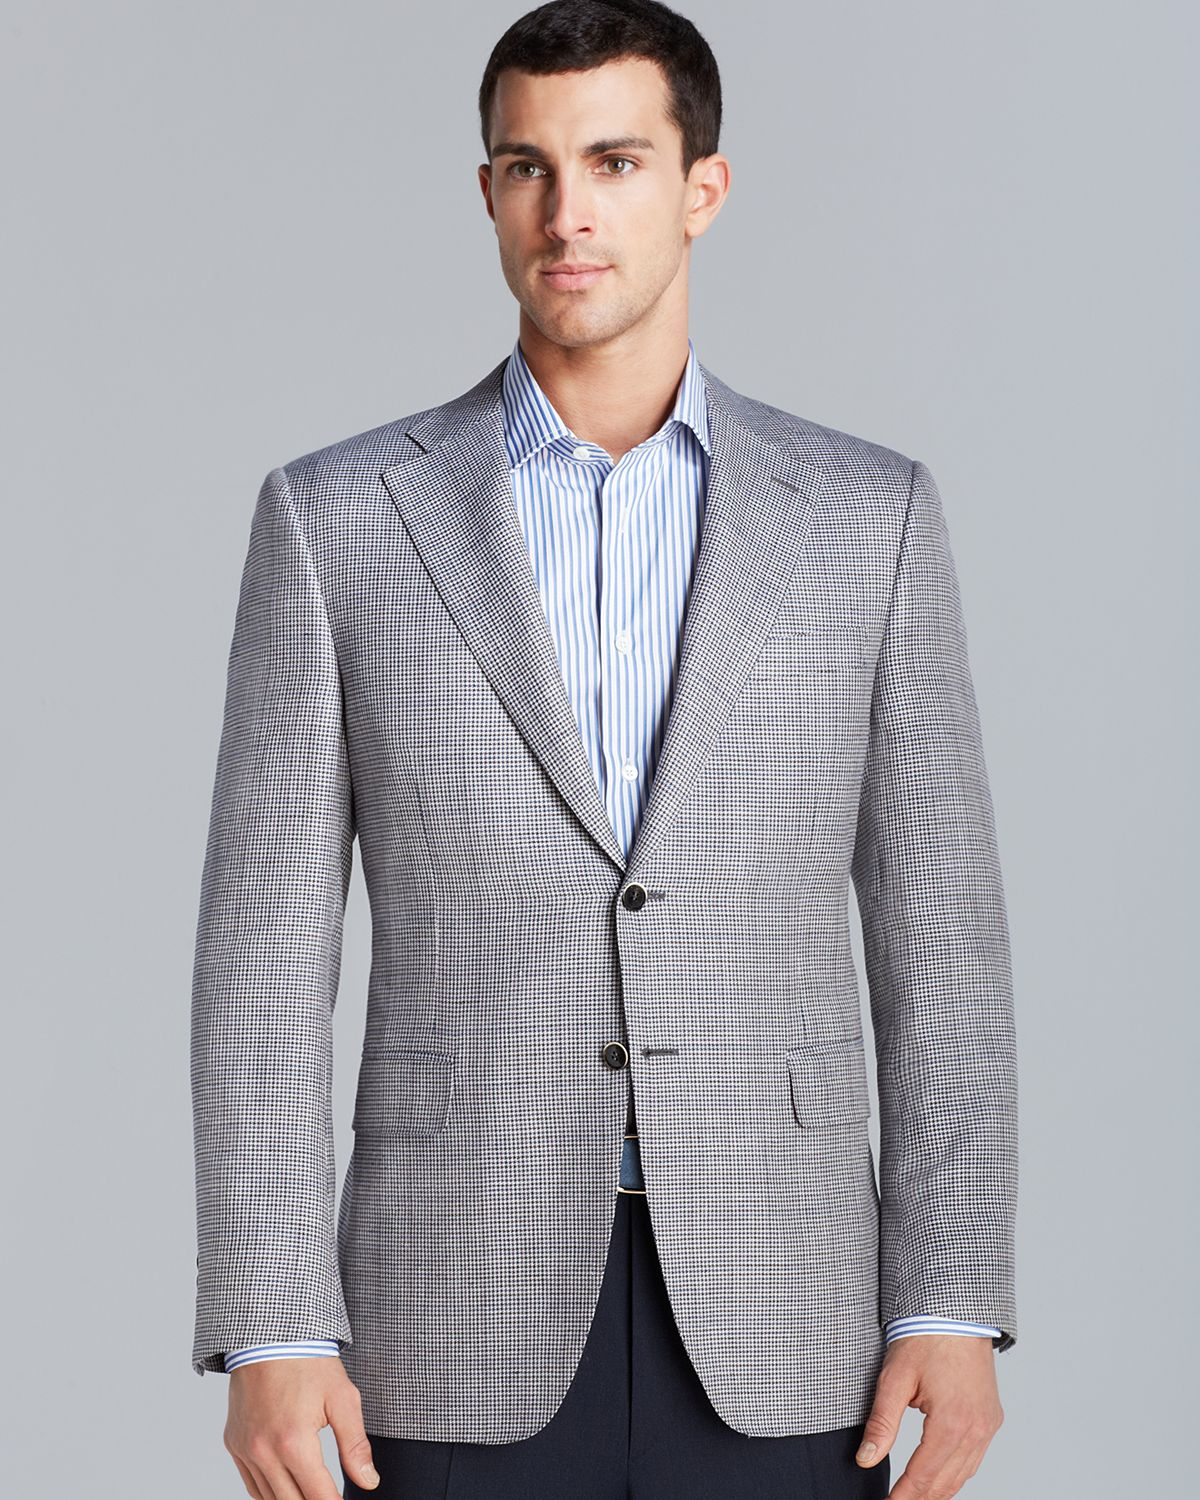 Canali Siena Twotone Houndstooth Sport Coat Regular Fit in Gray ...